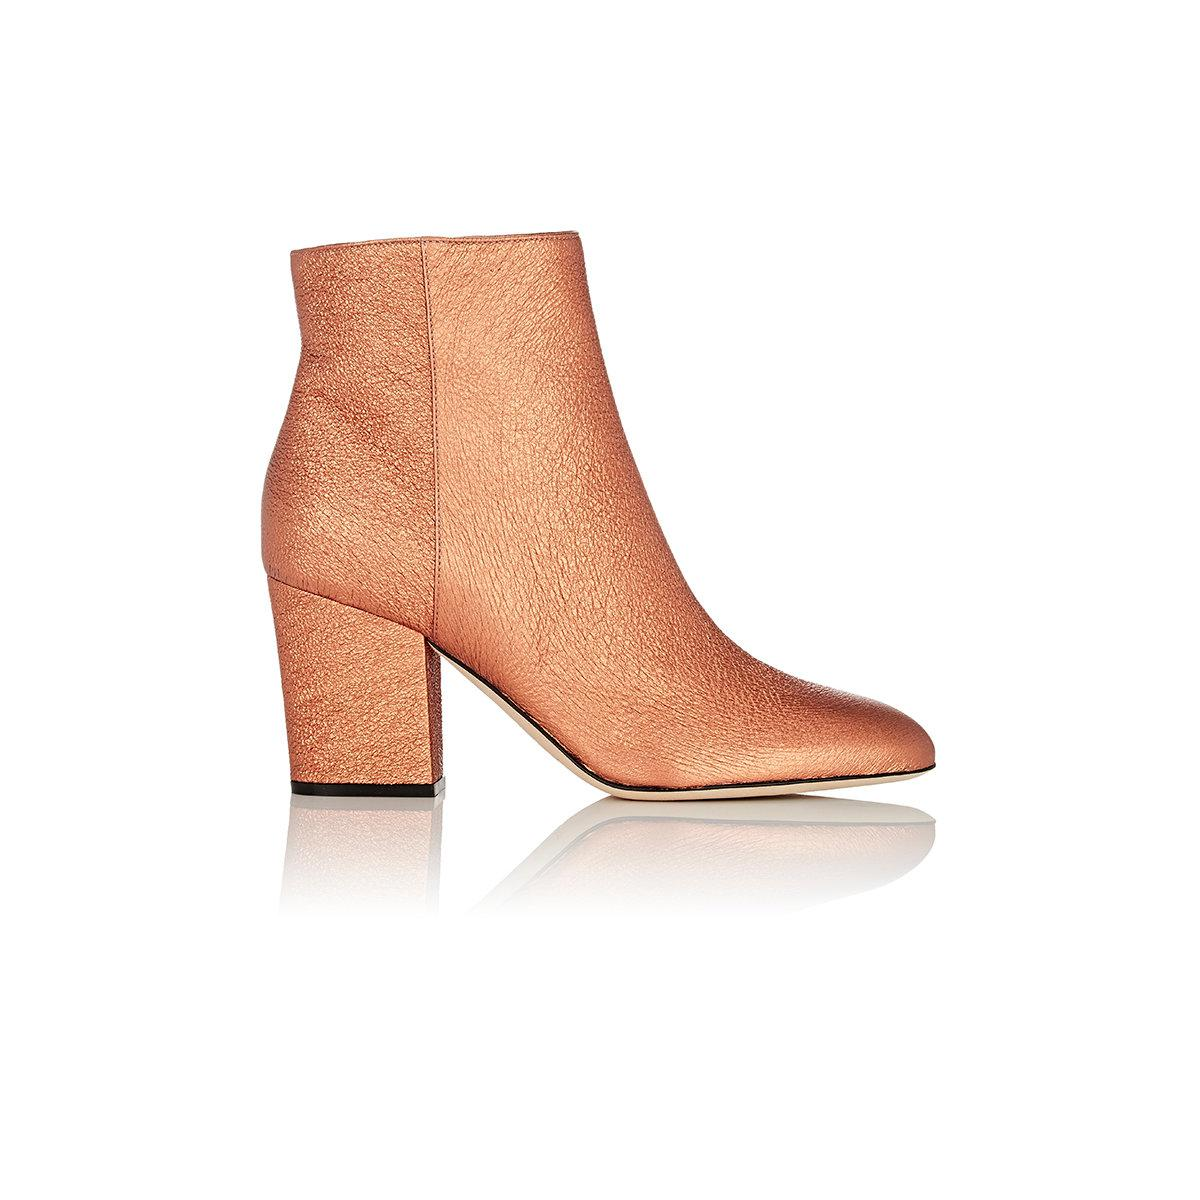 pointed ankle boots - Metallic Sergio Rossi Clearance Largest Supplier 2018 New Footaction Online Comfortable Cheap Price kTNLYnVe